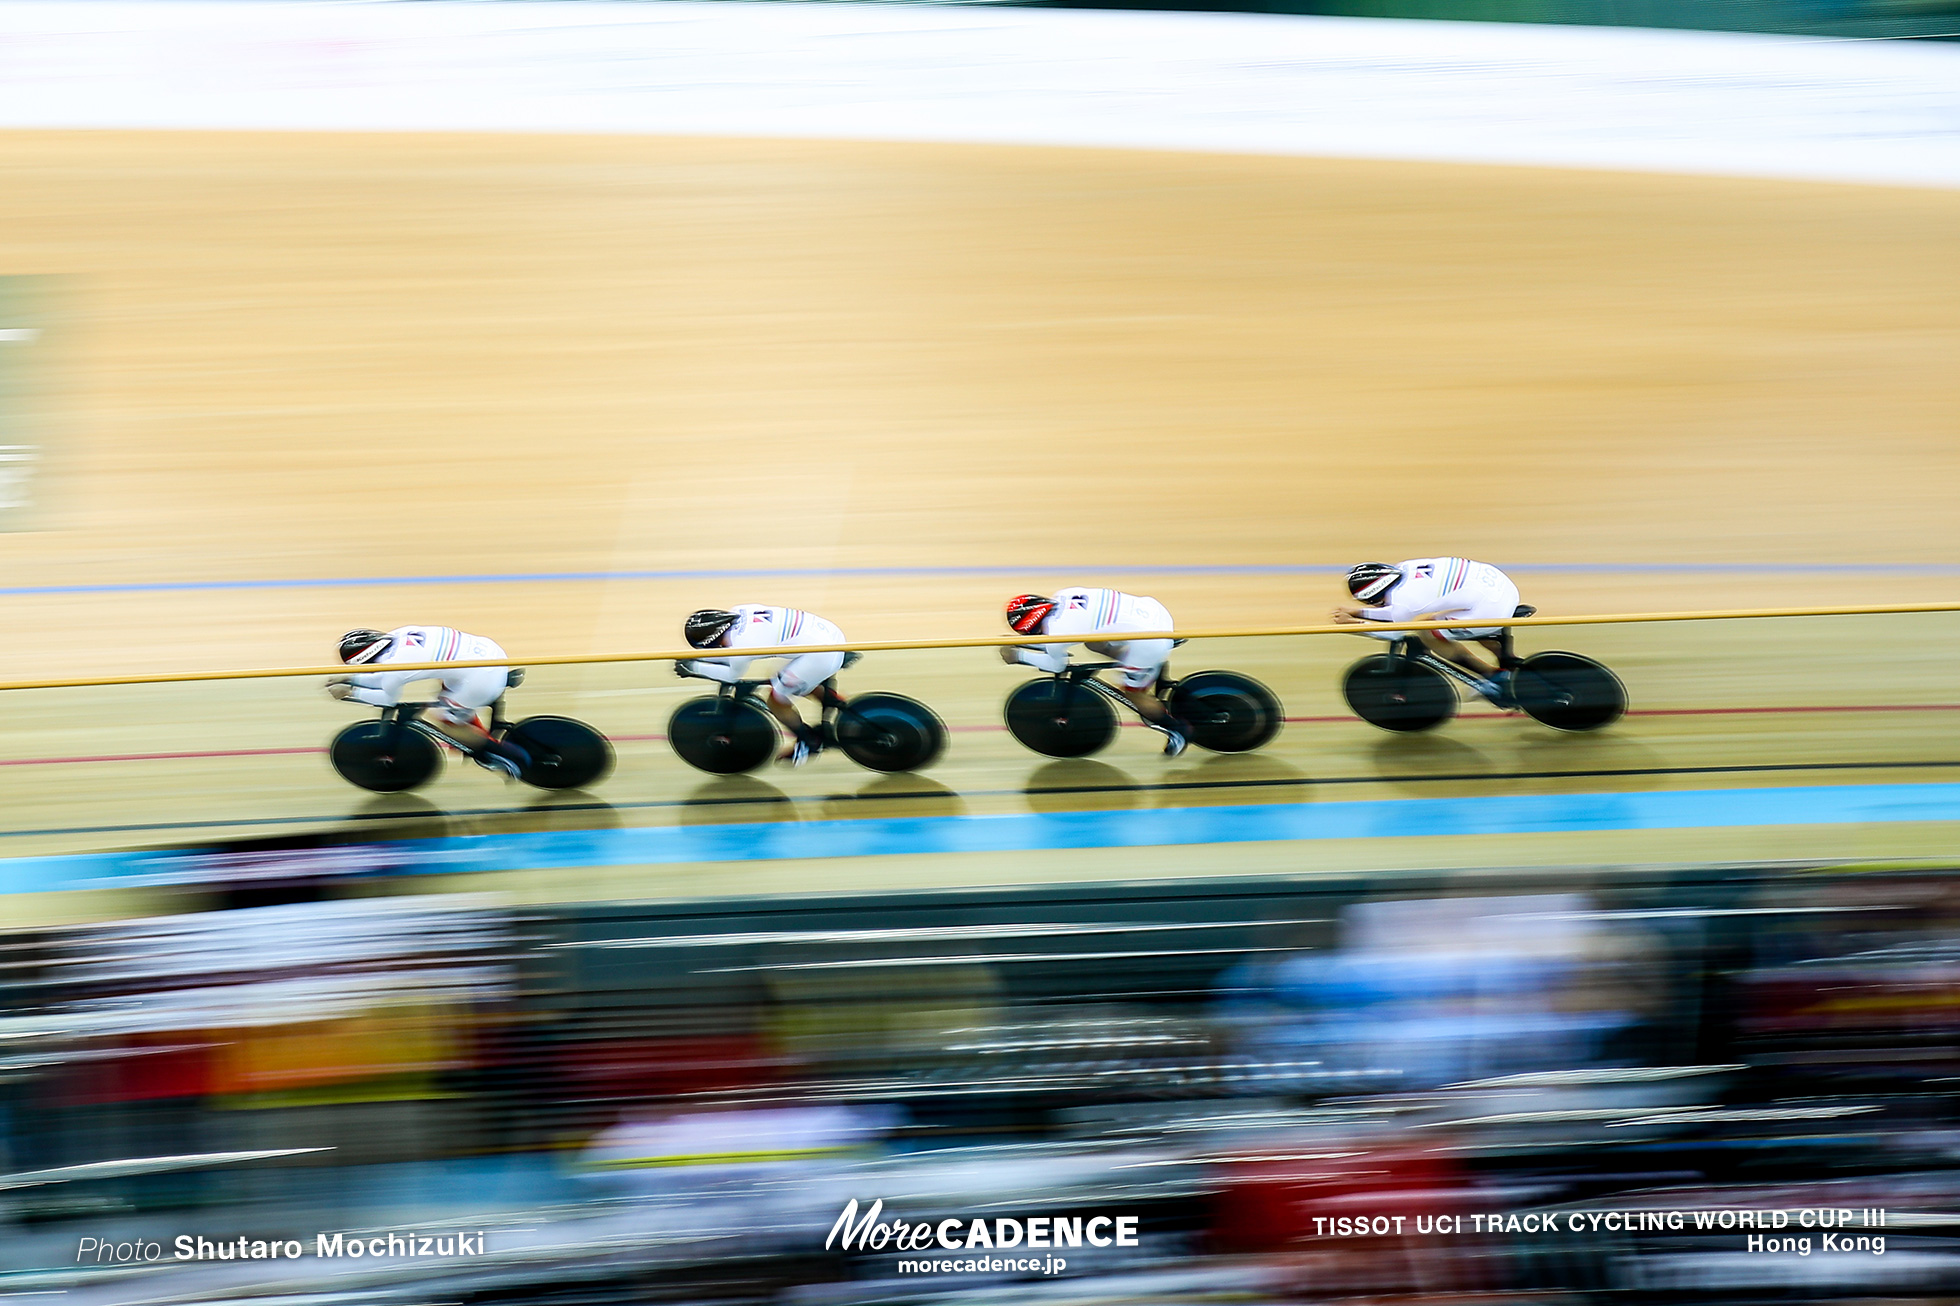 1st Round / Men's Team Pursuit / TISSOT UCI TRACK CYCLING WORLD CUP III, Hong Kong, 今村駿介 窪木一茂 近谷涼 沢田桂太郎